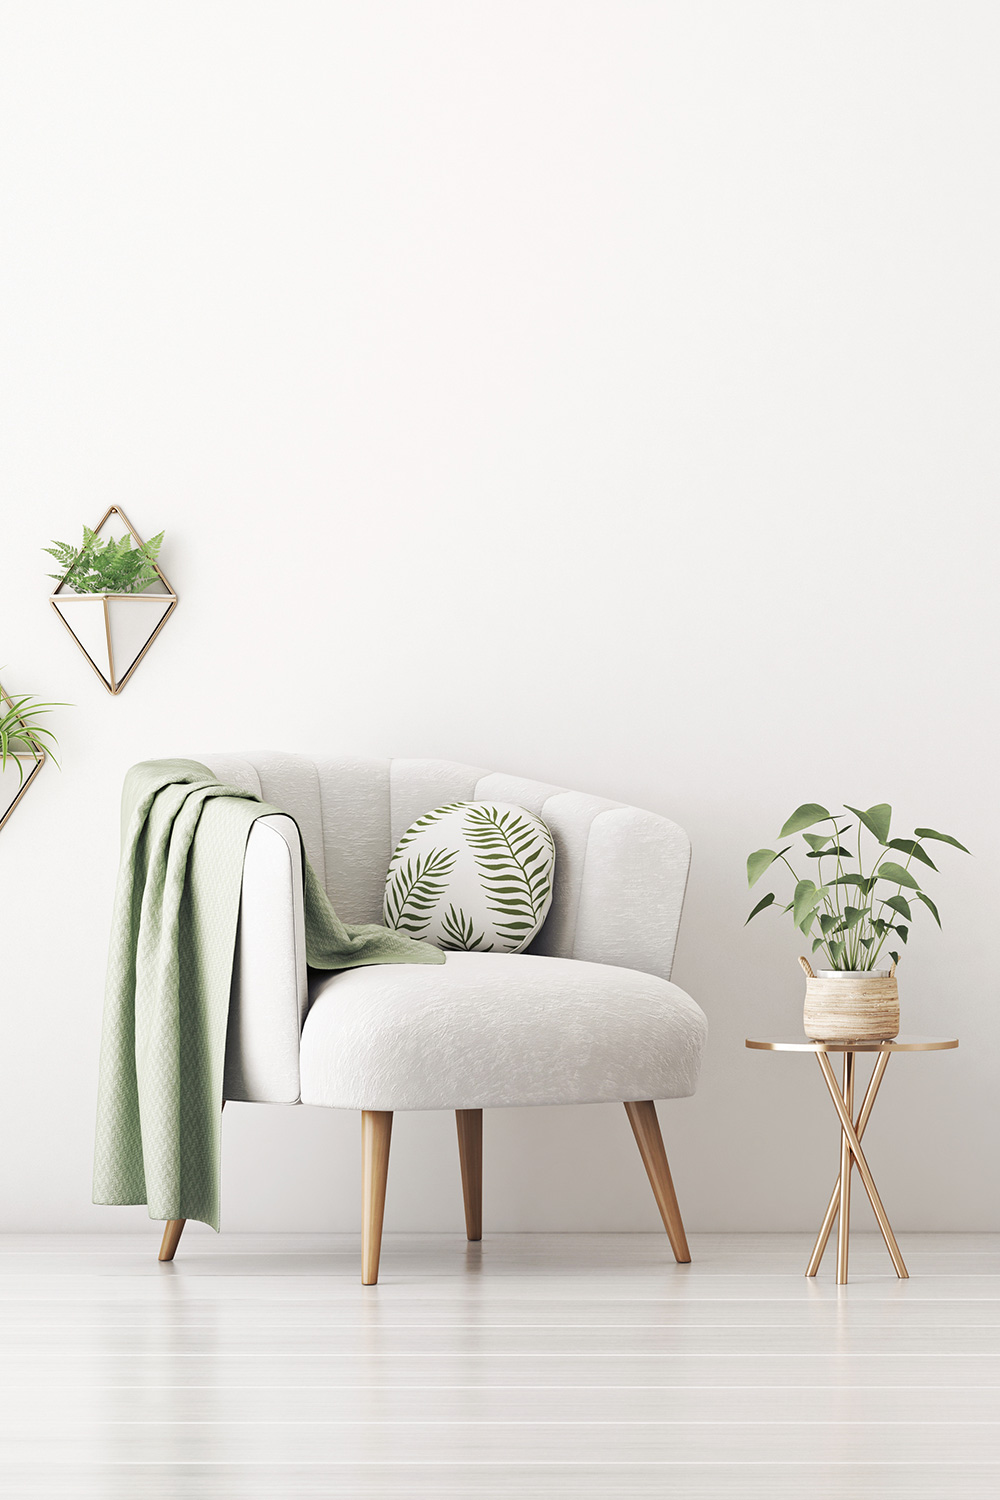 a comfy chair with plants - Should I See a Therapist After My Pregnancy Loss?